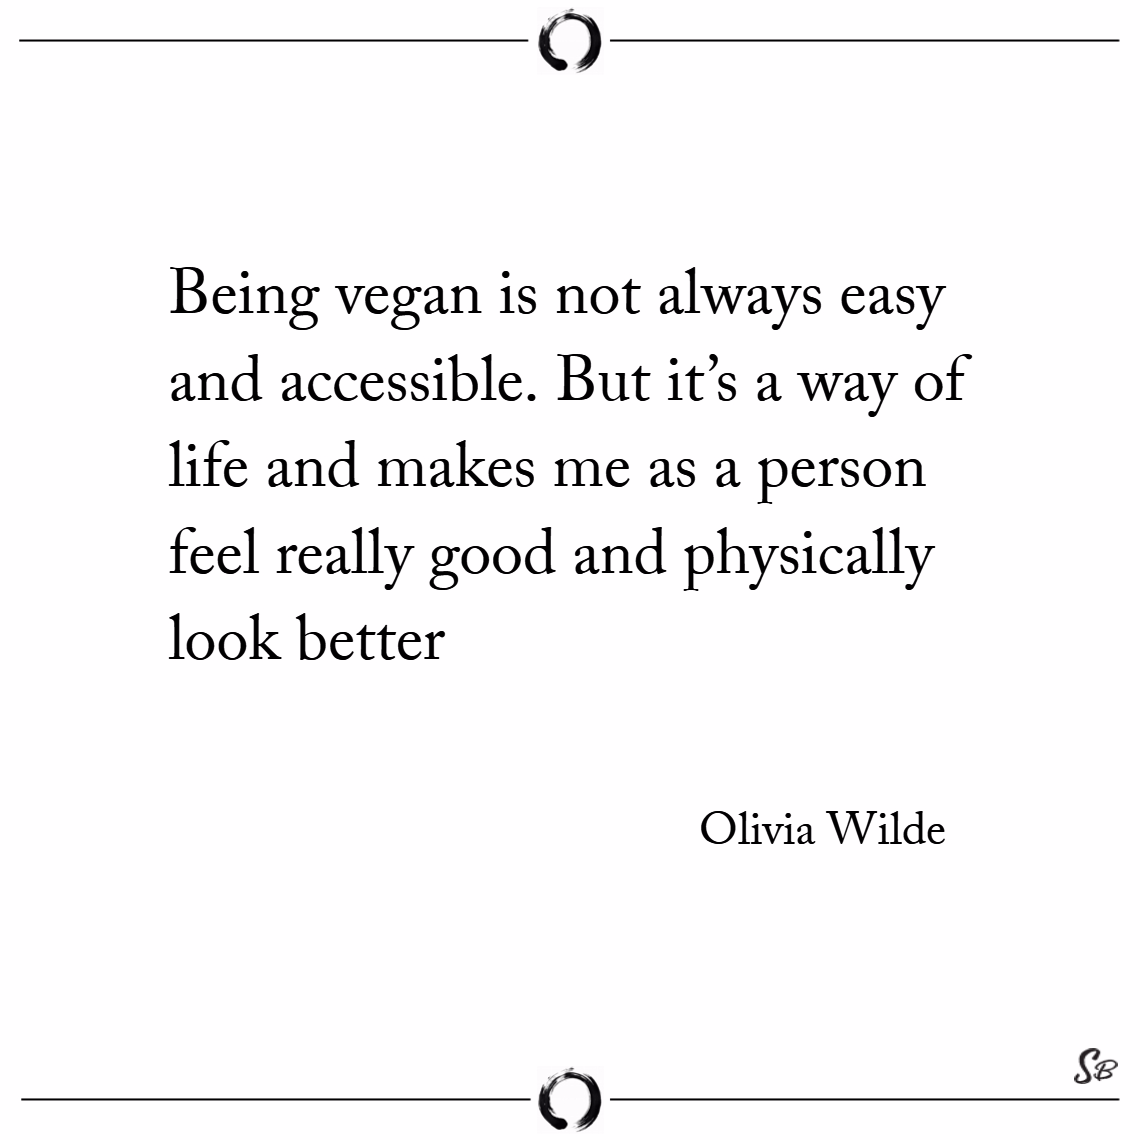 Being vegan is not always easy and accessible. but it's a way of life and makes me as a person feel really good and physically look better. – olivia wilde